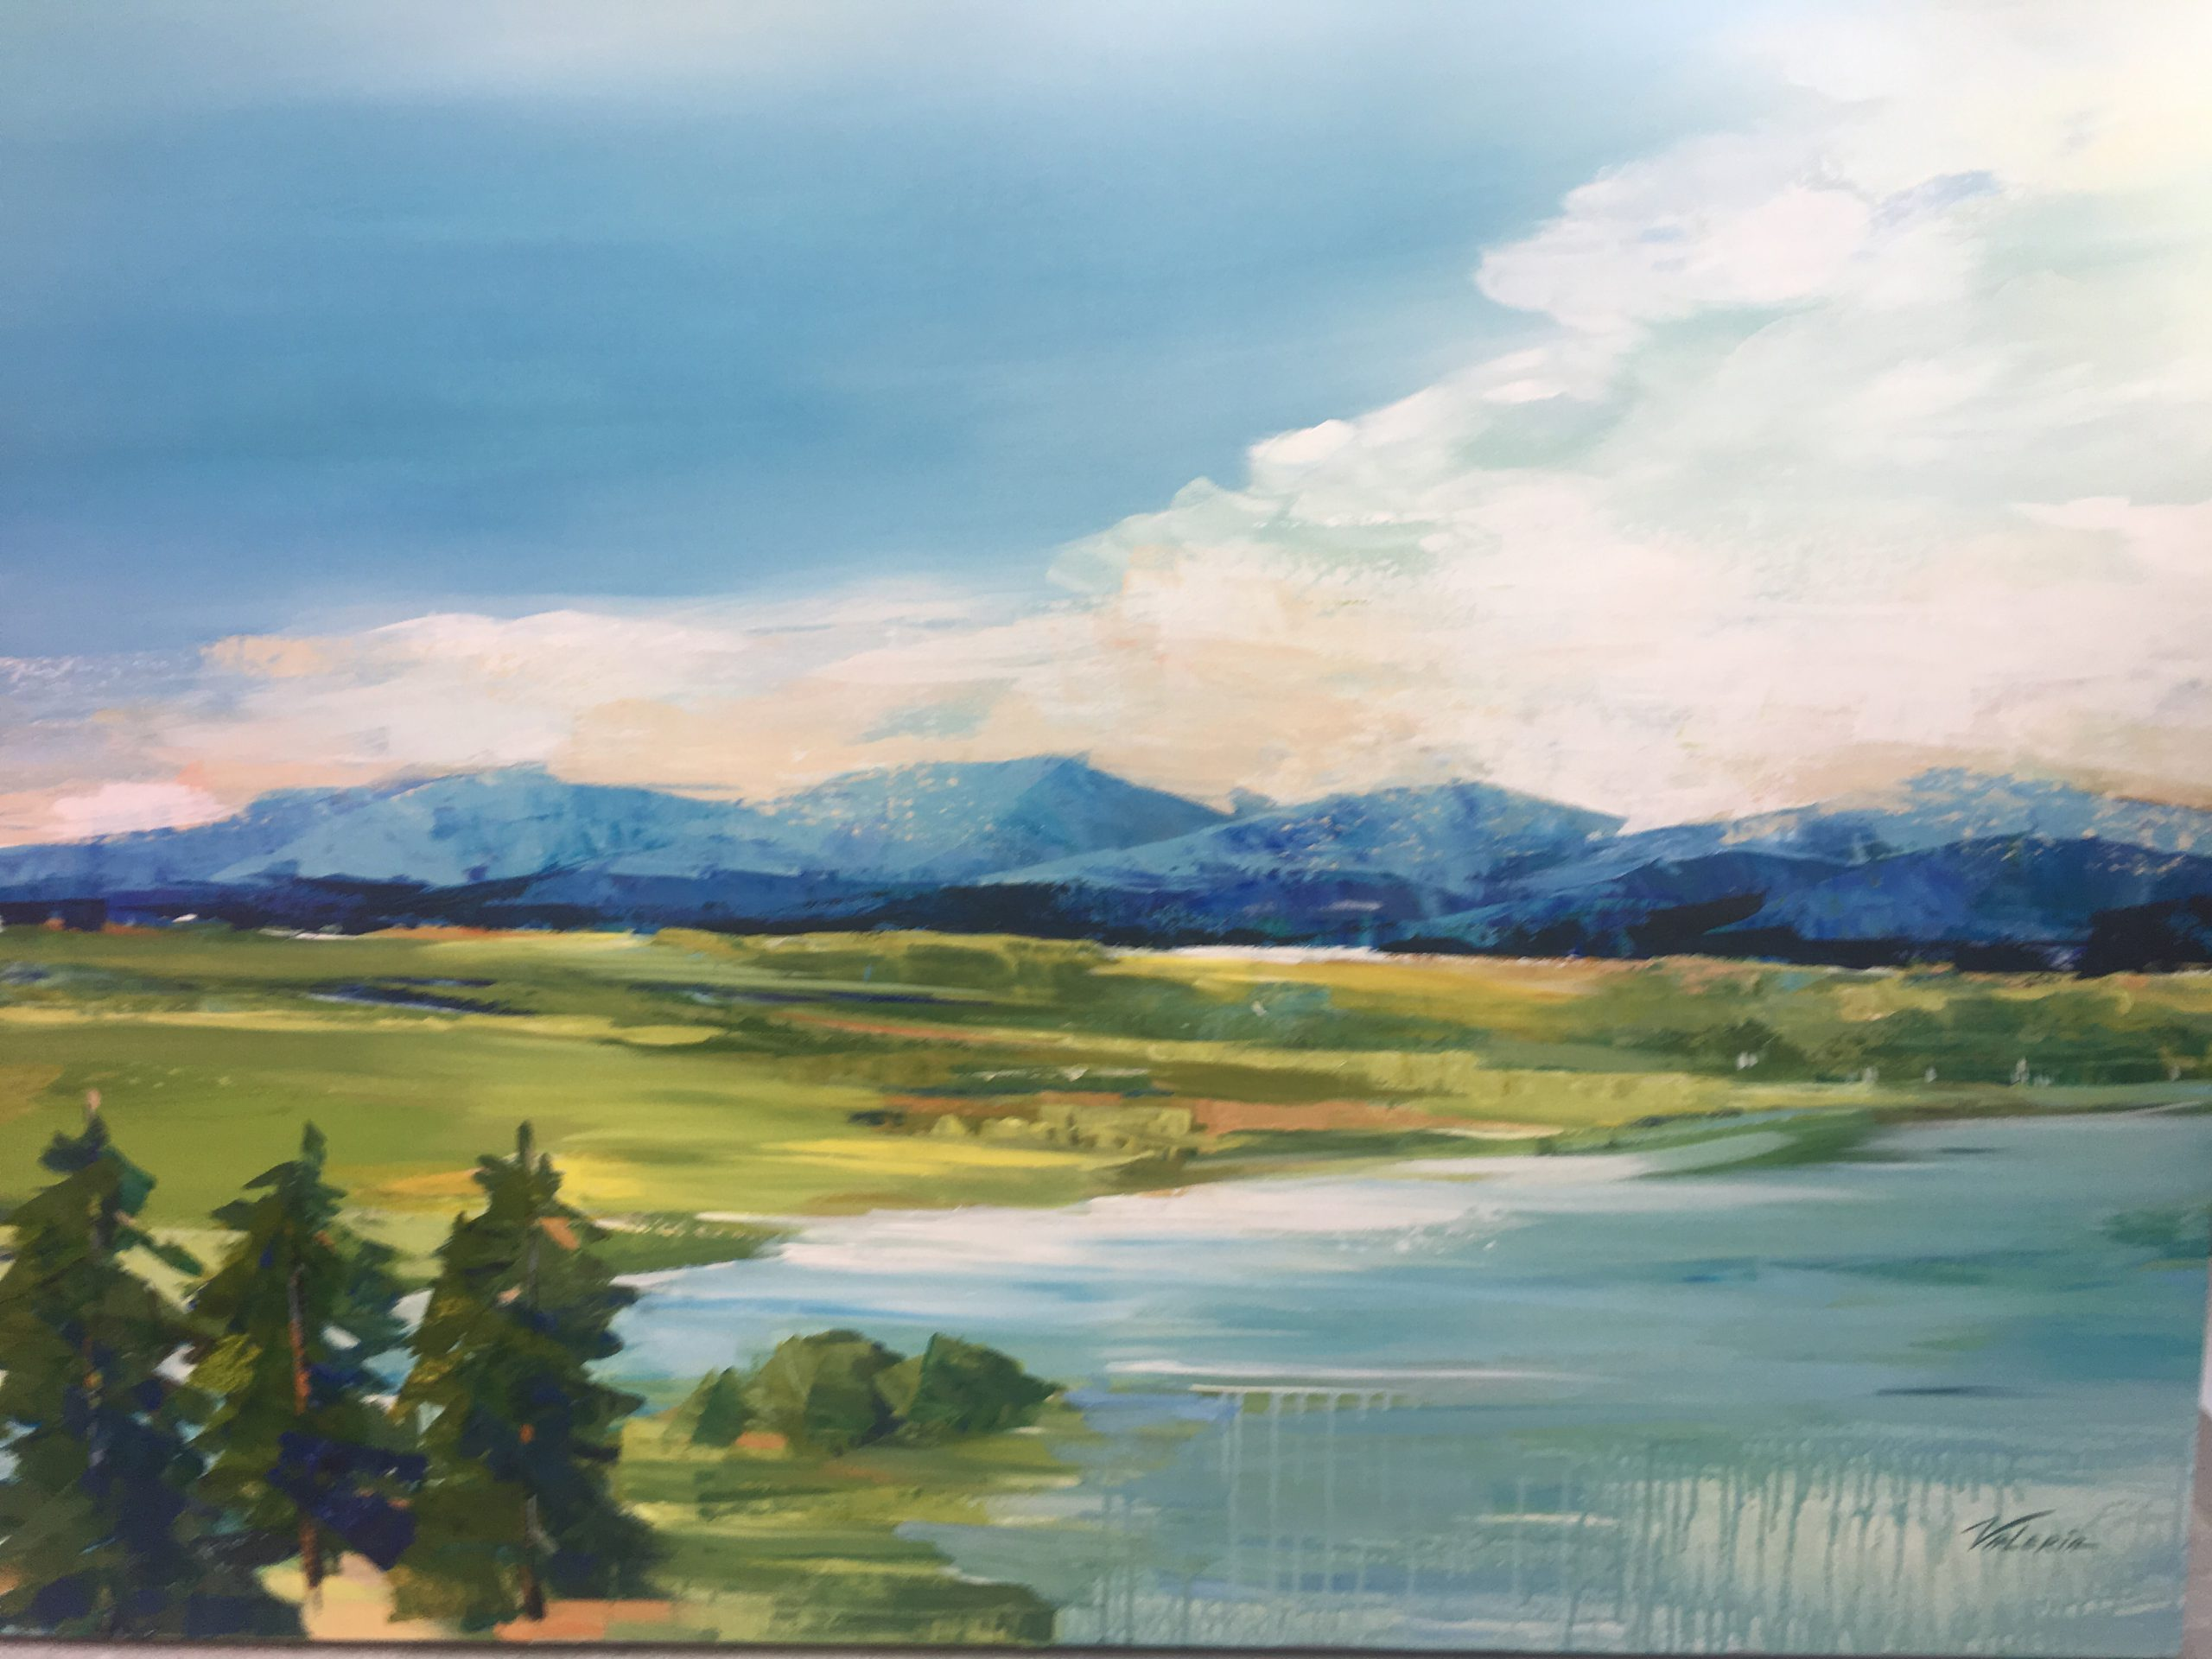 Melody of the Mountains, acrylic landscape painting by Valeria Mravyan   Effusion Art Gallery + Cast Glass Studio, Invermere BC